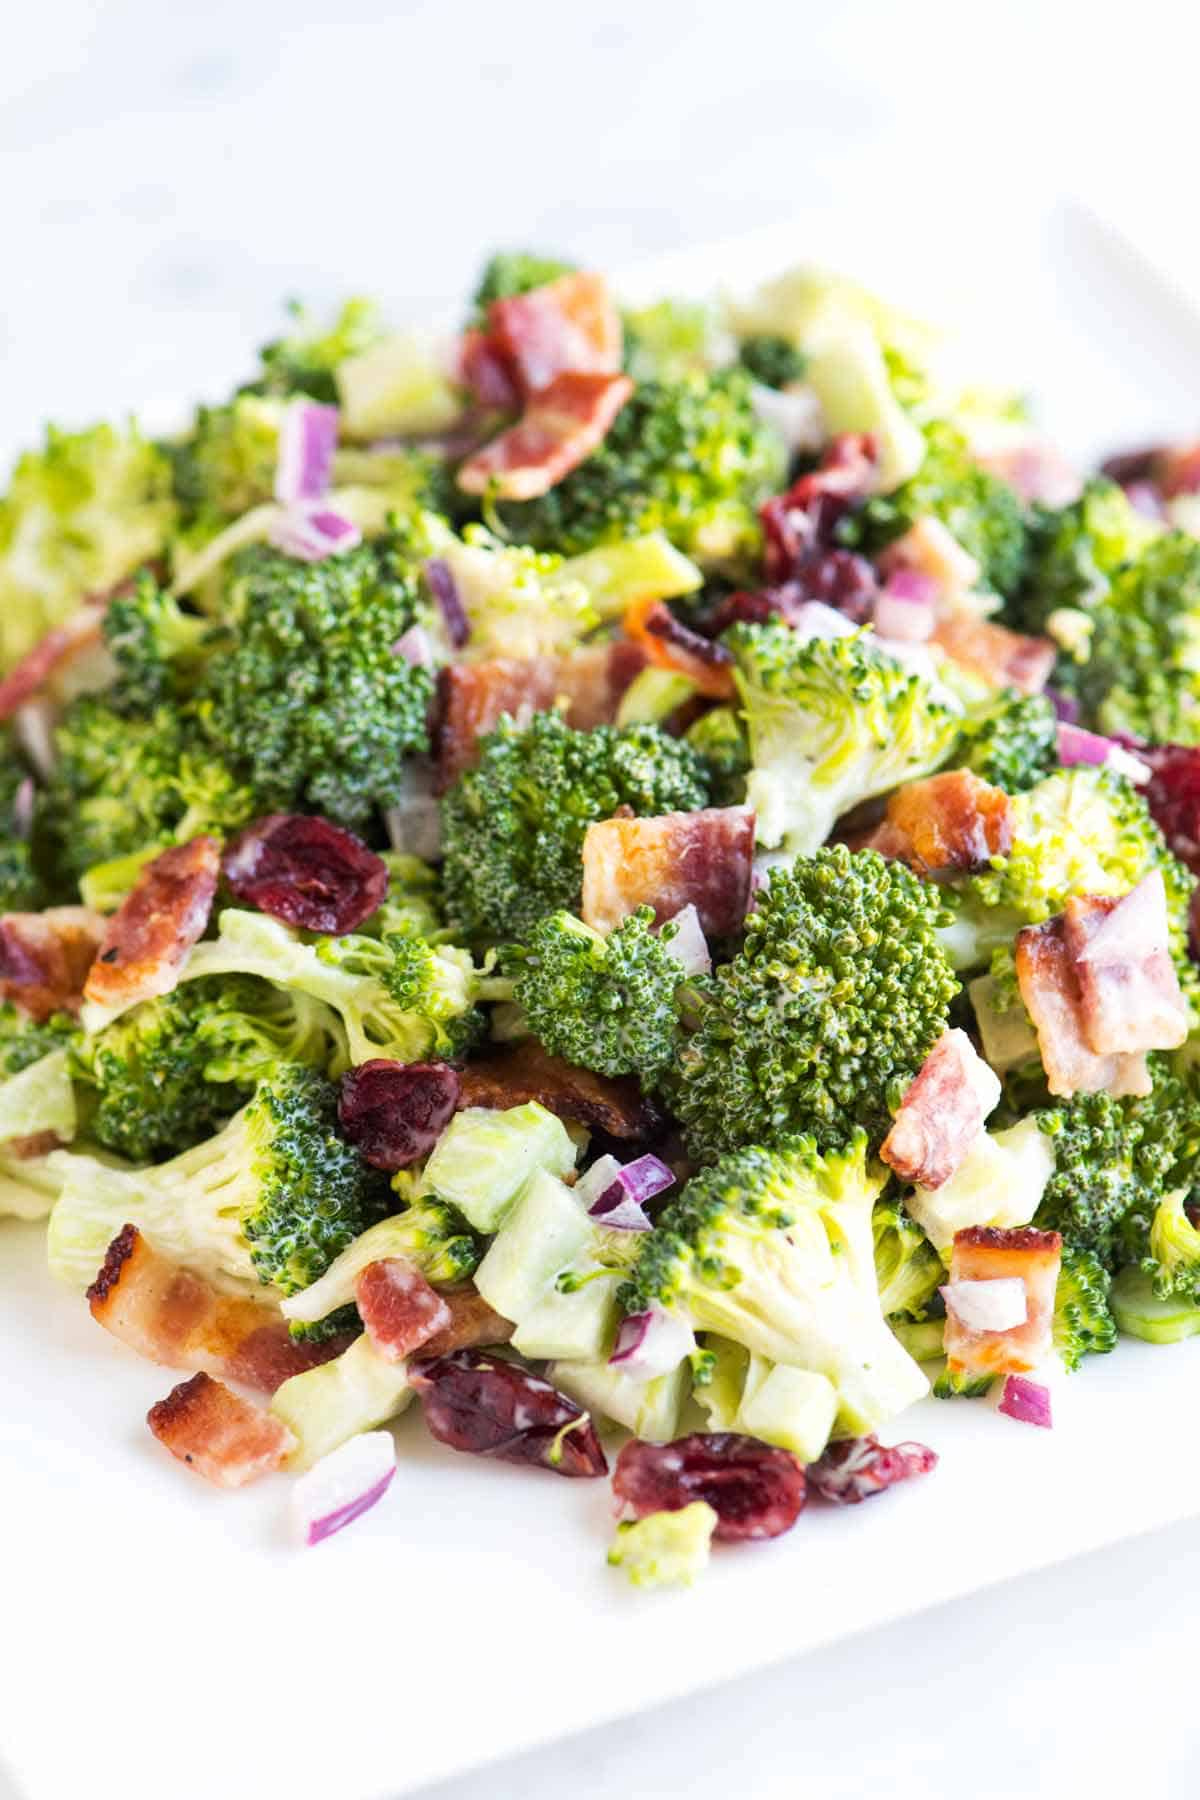 How To Make Broccoli Salad